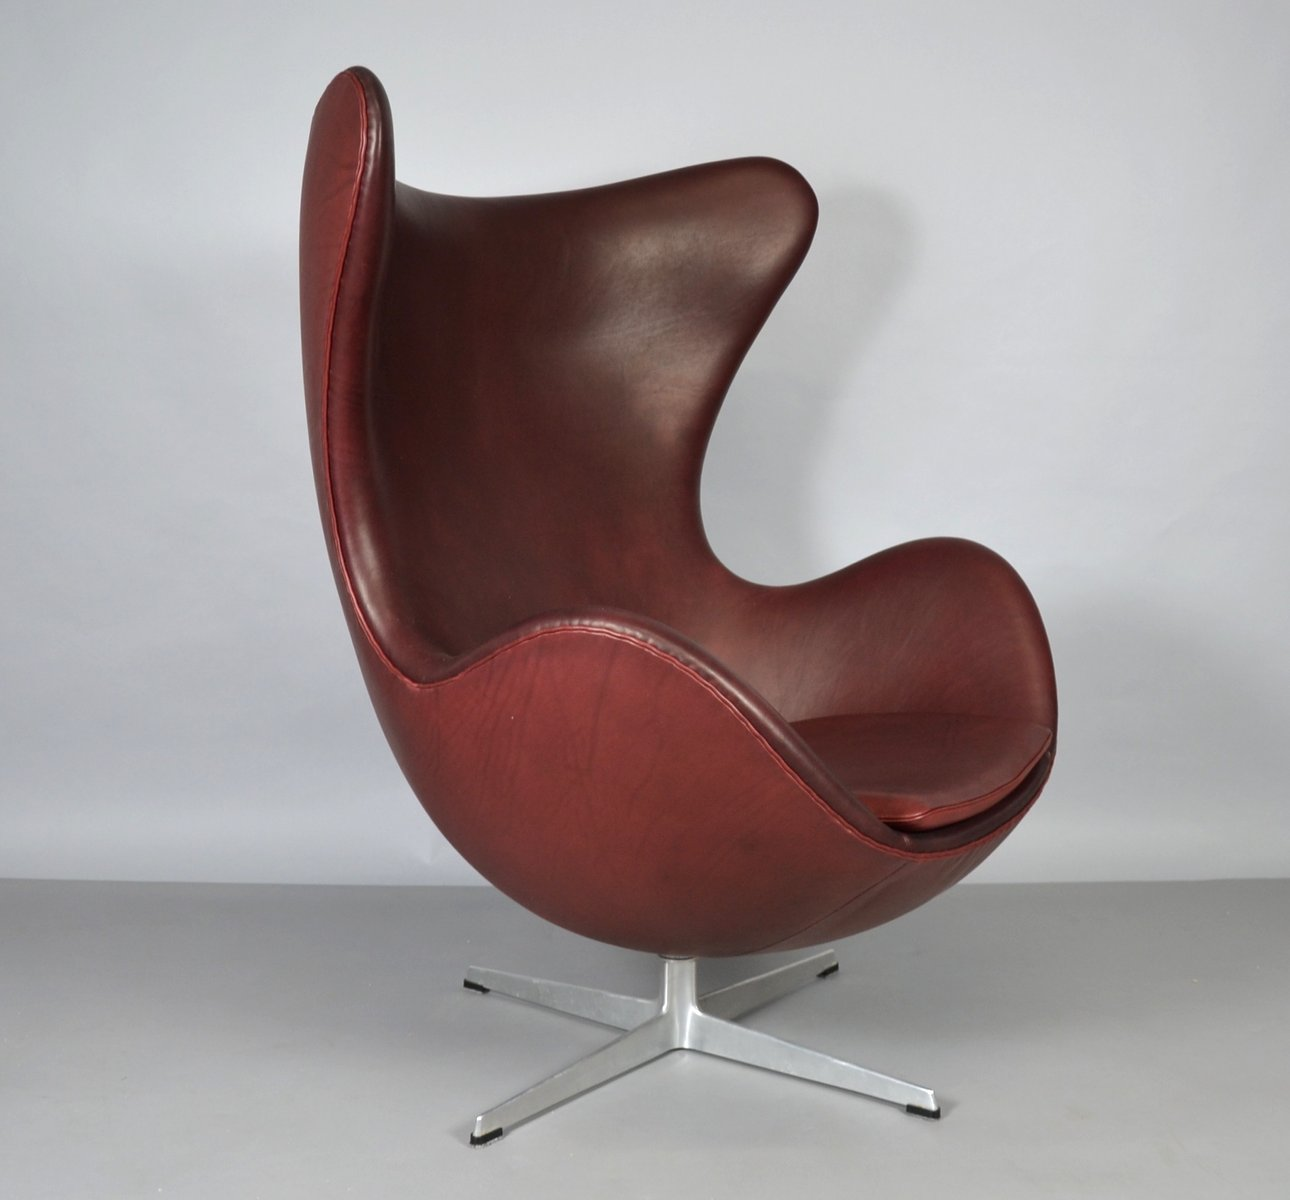 leather egg chair leather egg chair by arne jacobsen for fritz hansen 1965 16624 | leather egg chair by arne jacobsen for fritz hansen 1965 3